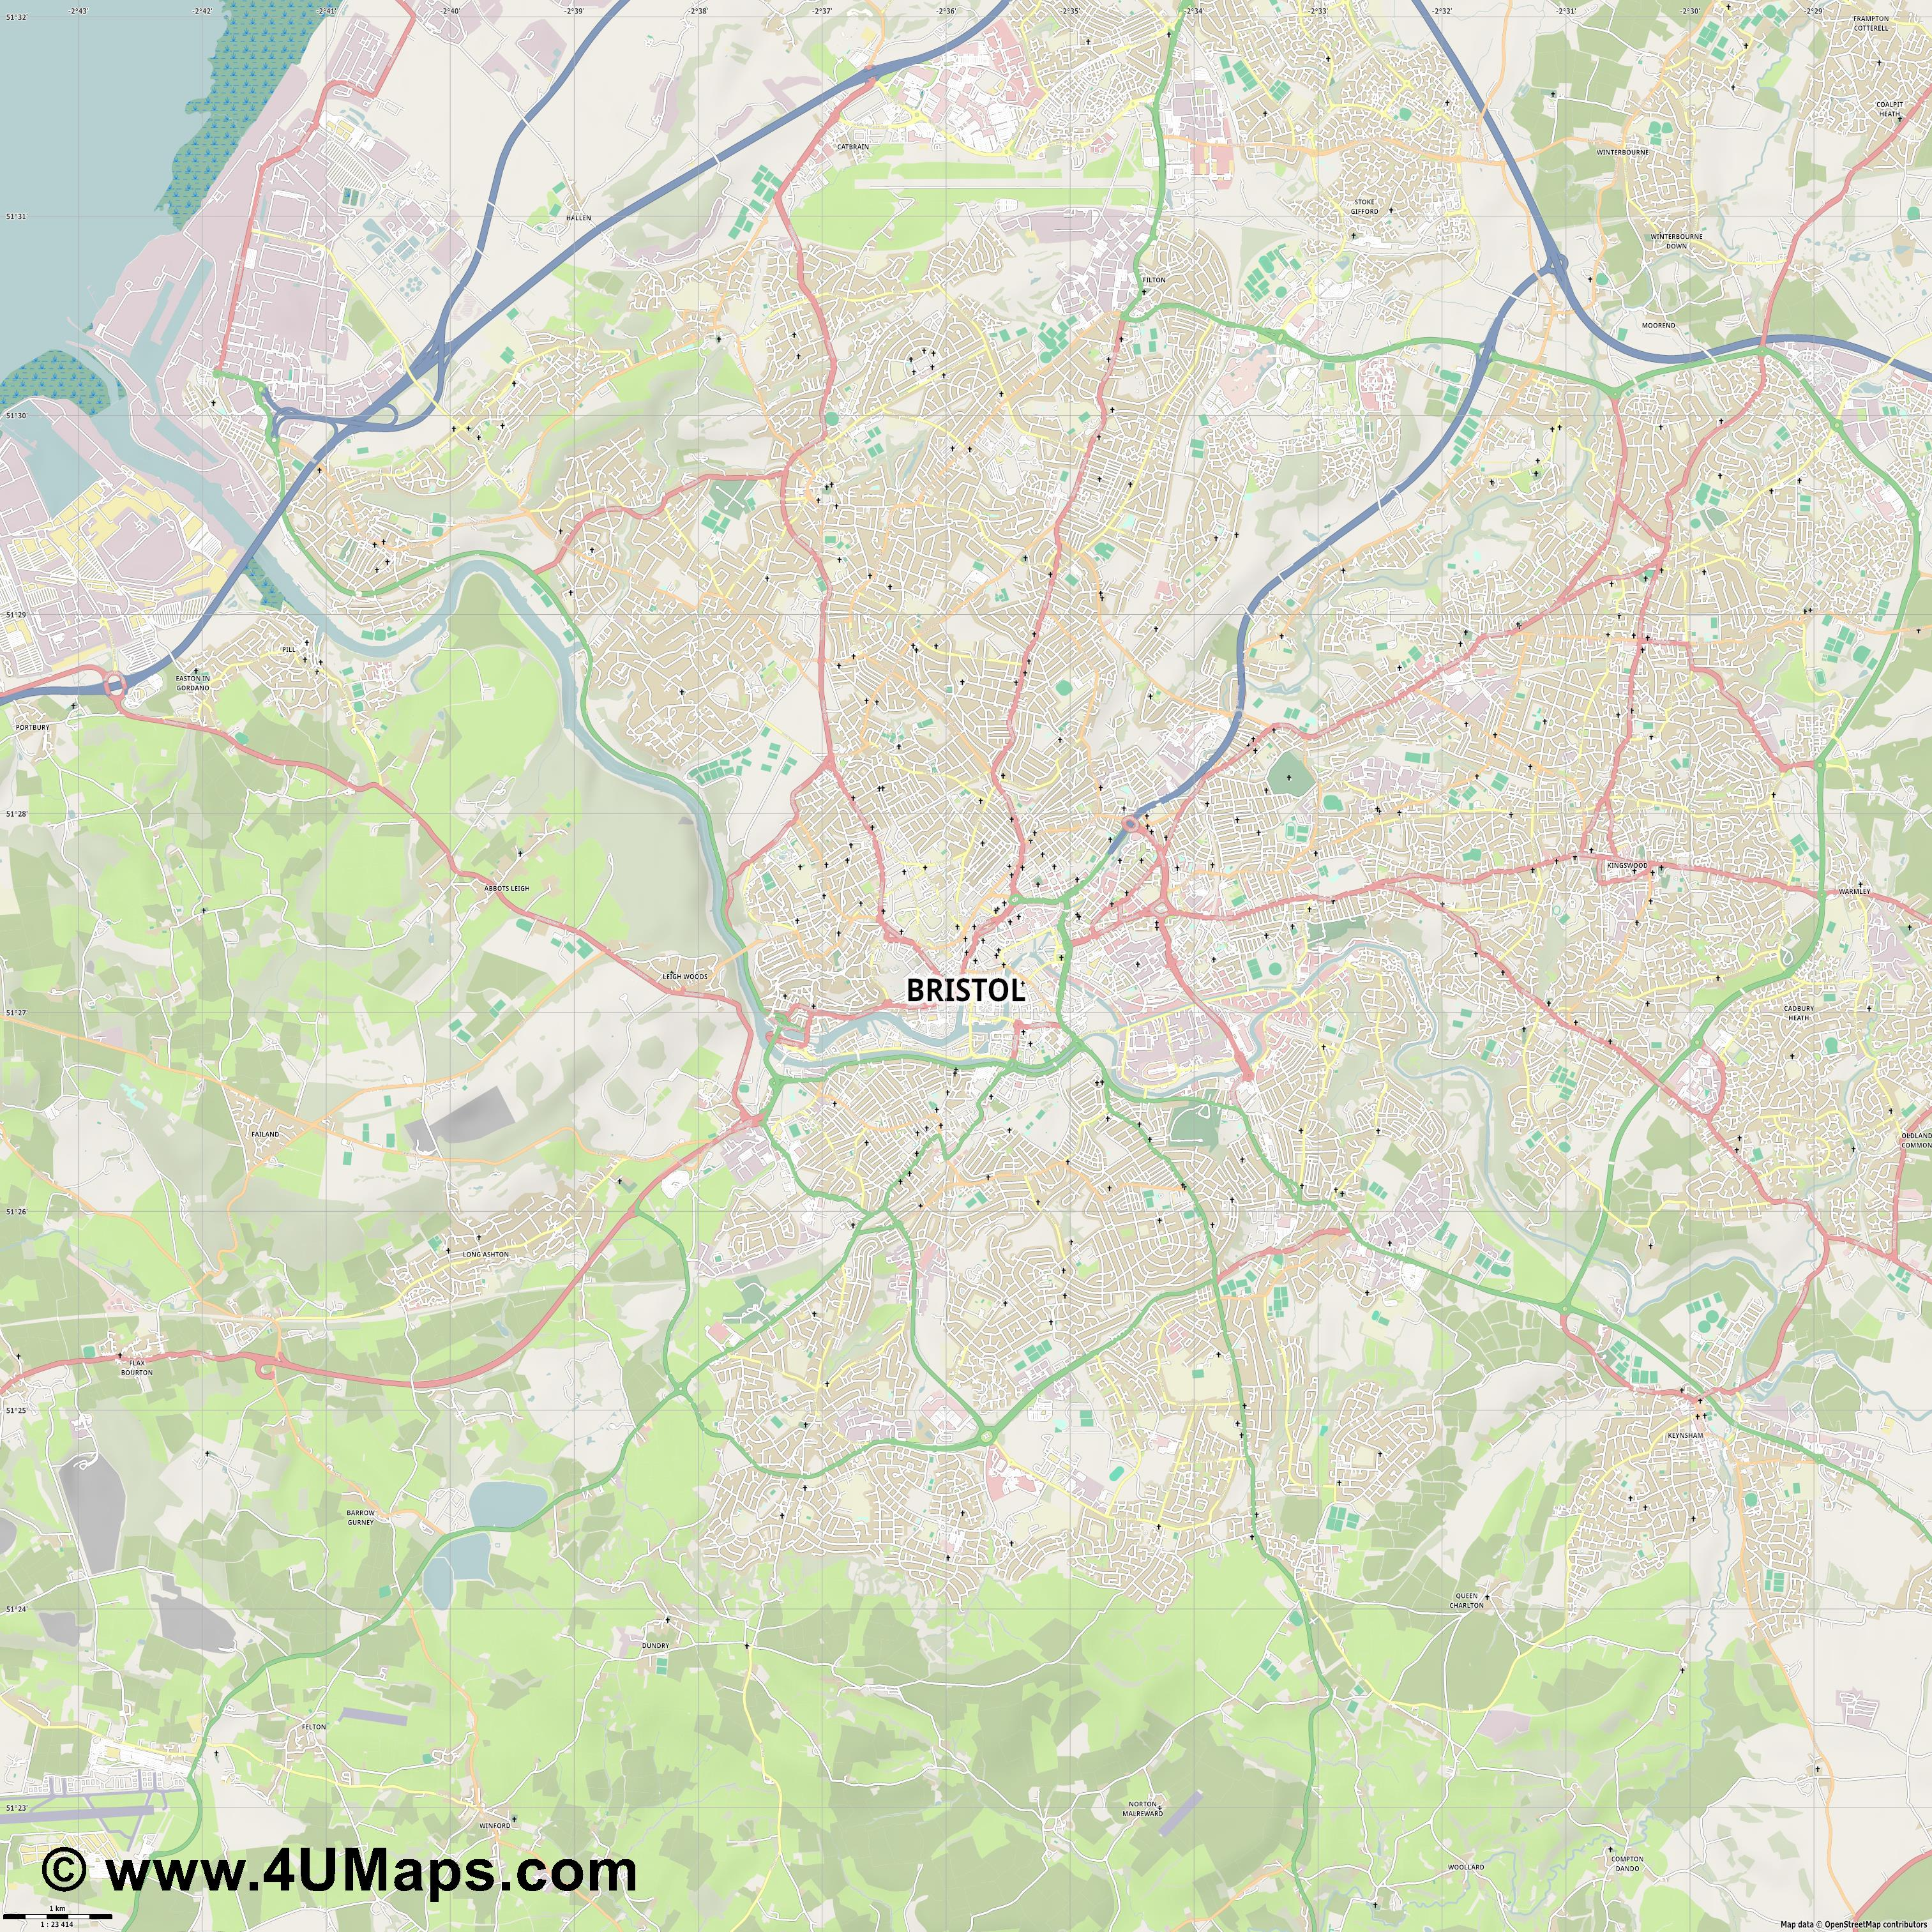 Bristol  jpg high detail, large area preview vector city map